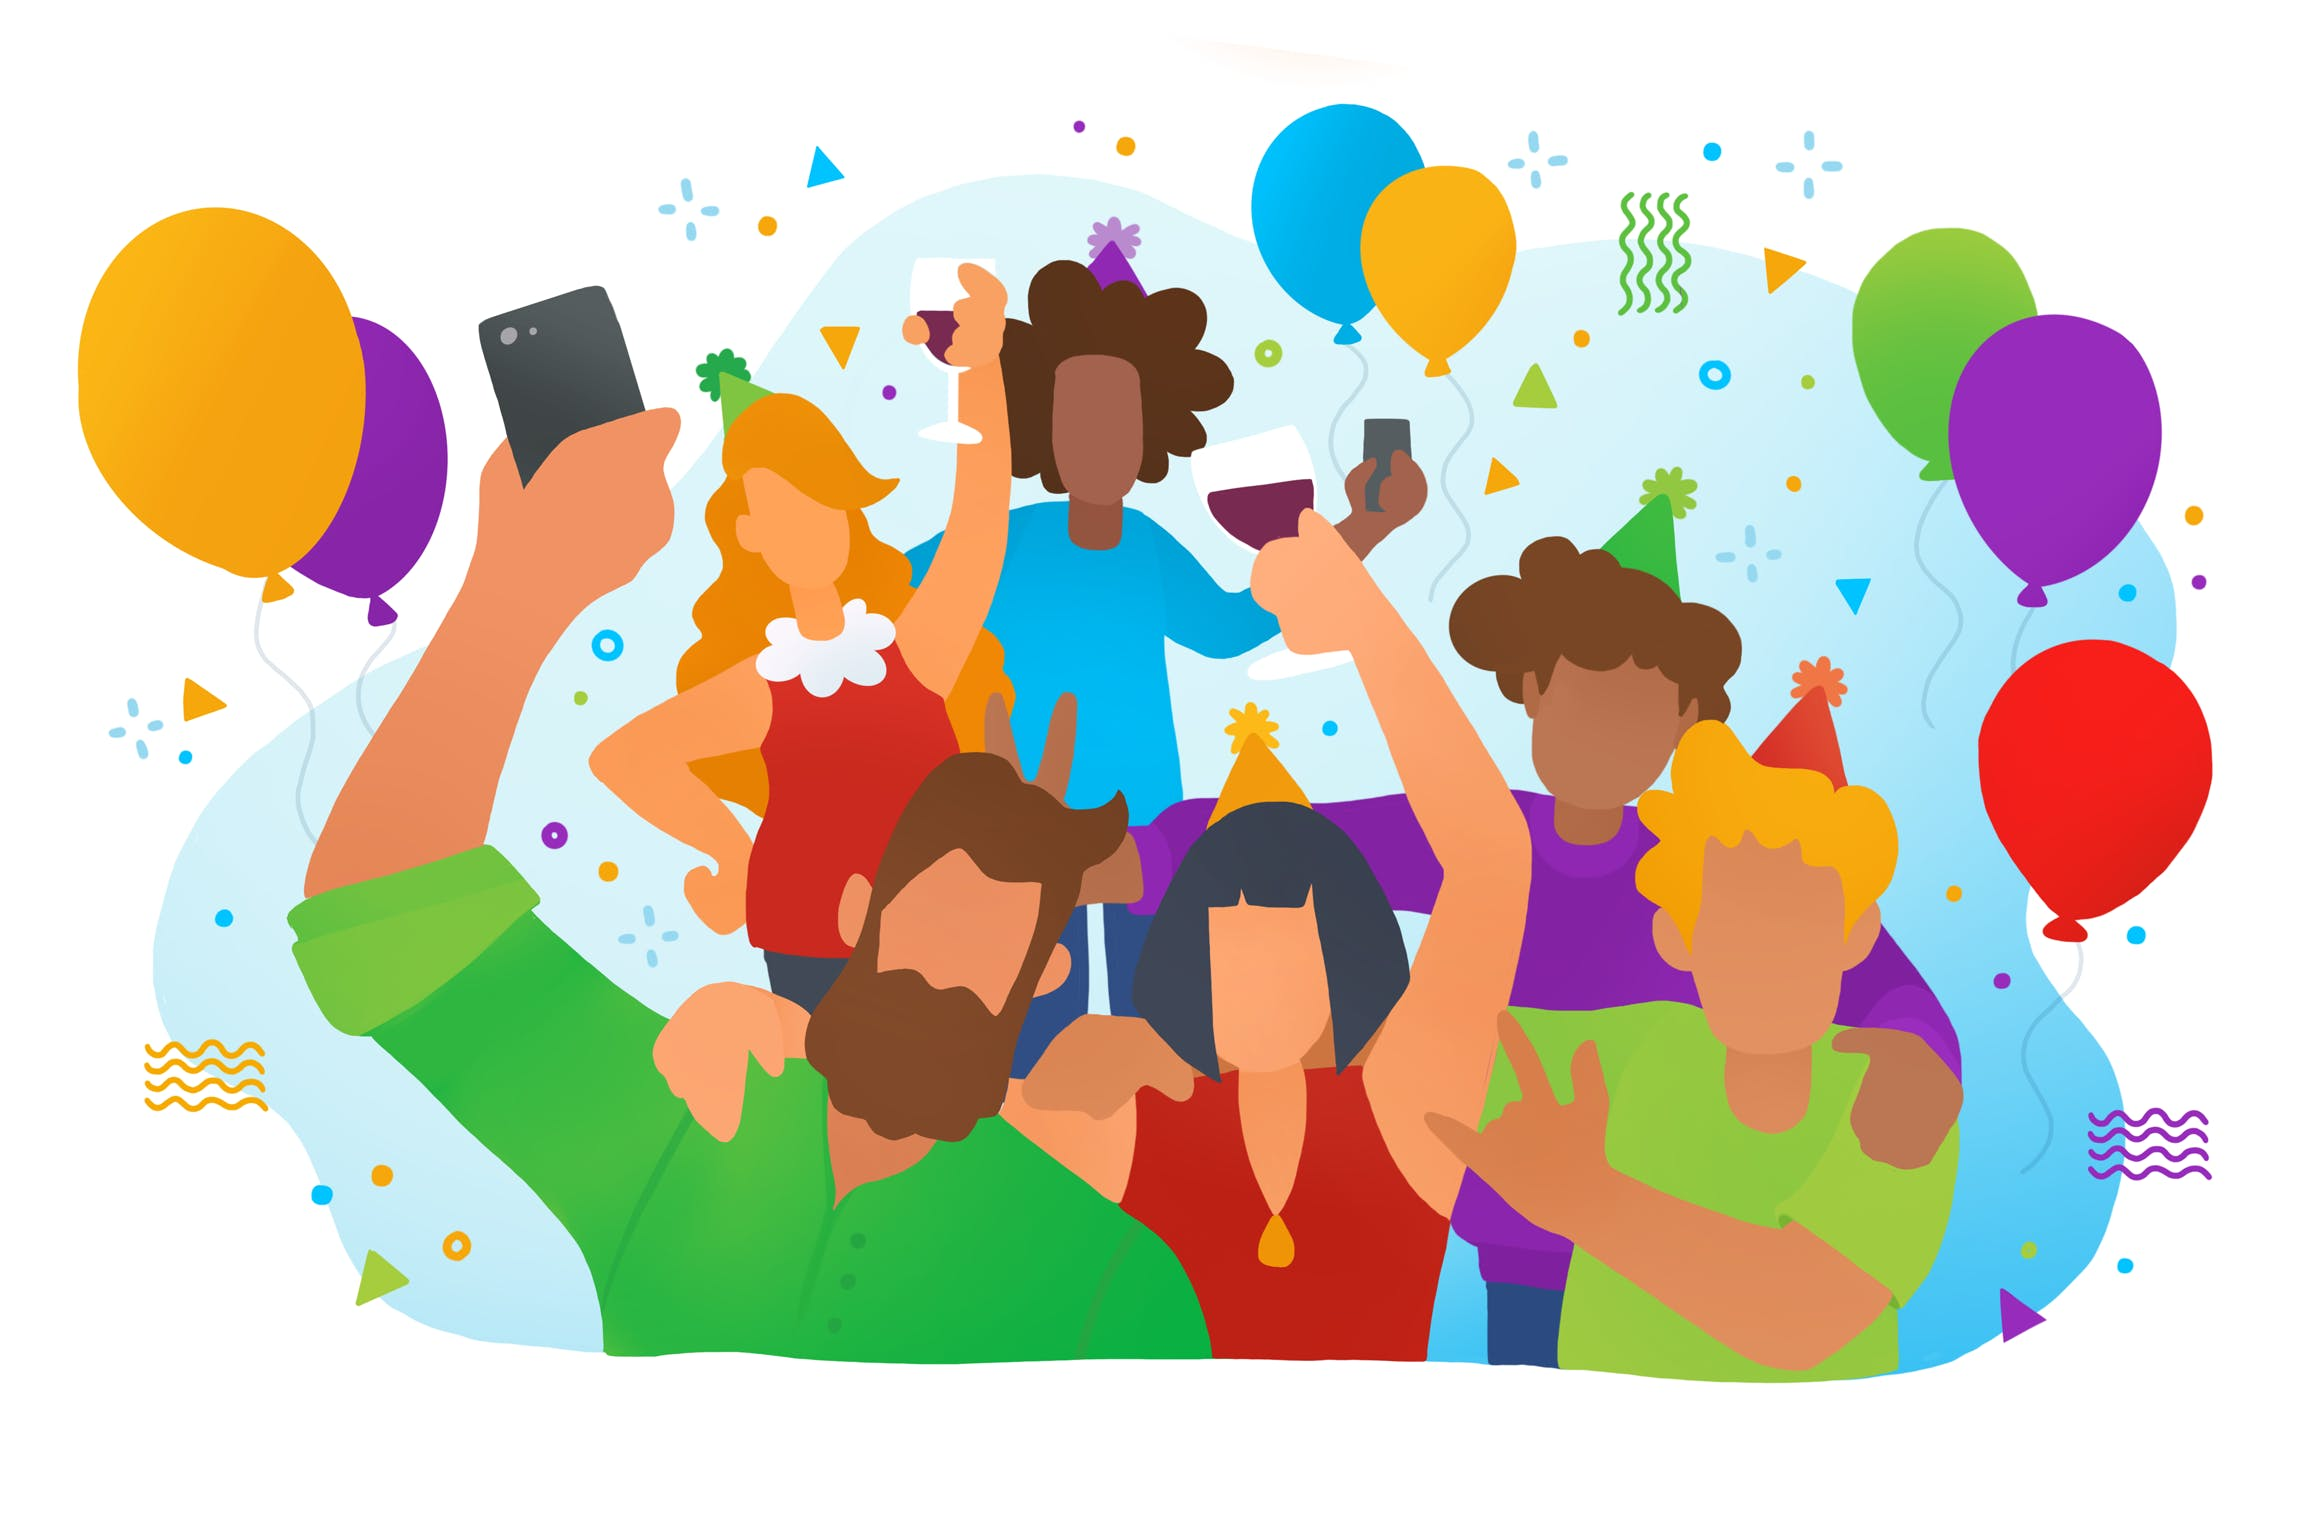 Colourful cartoon illustration of a group of people enjoying a party with drinks, balloons, and party hats.